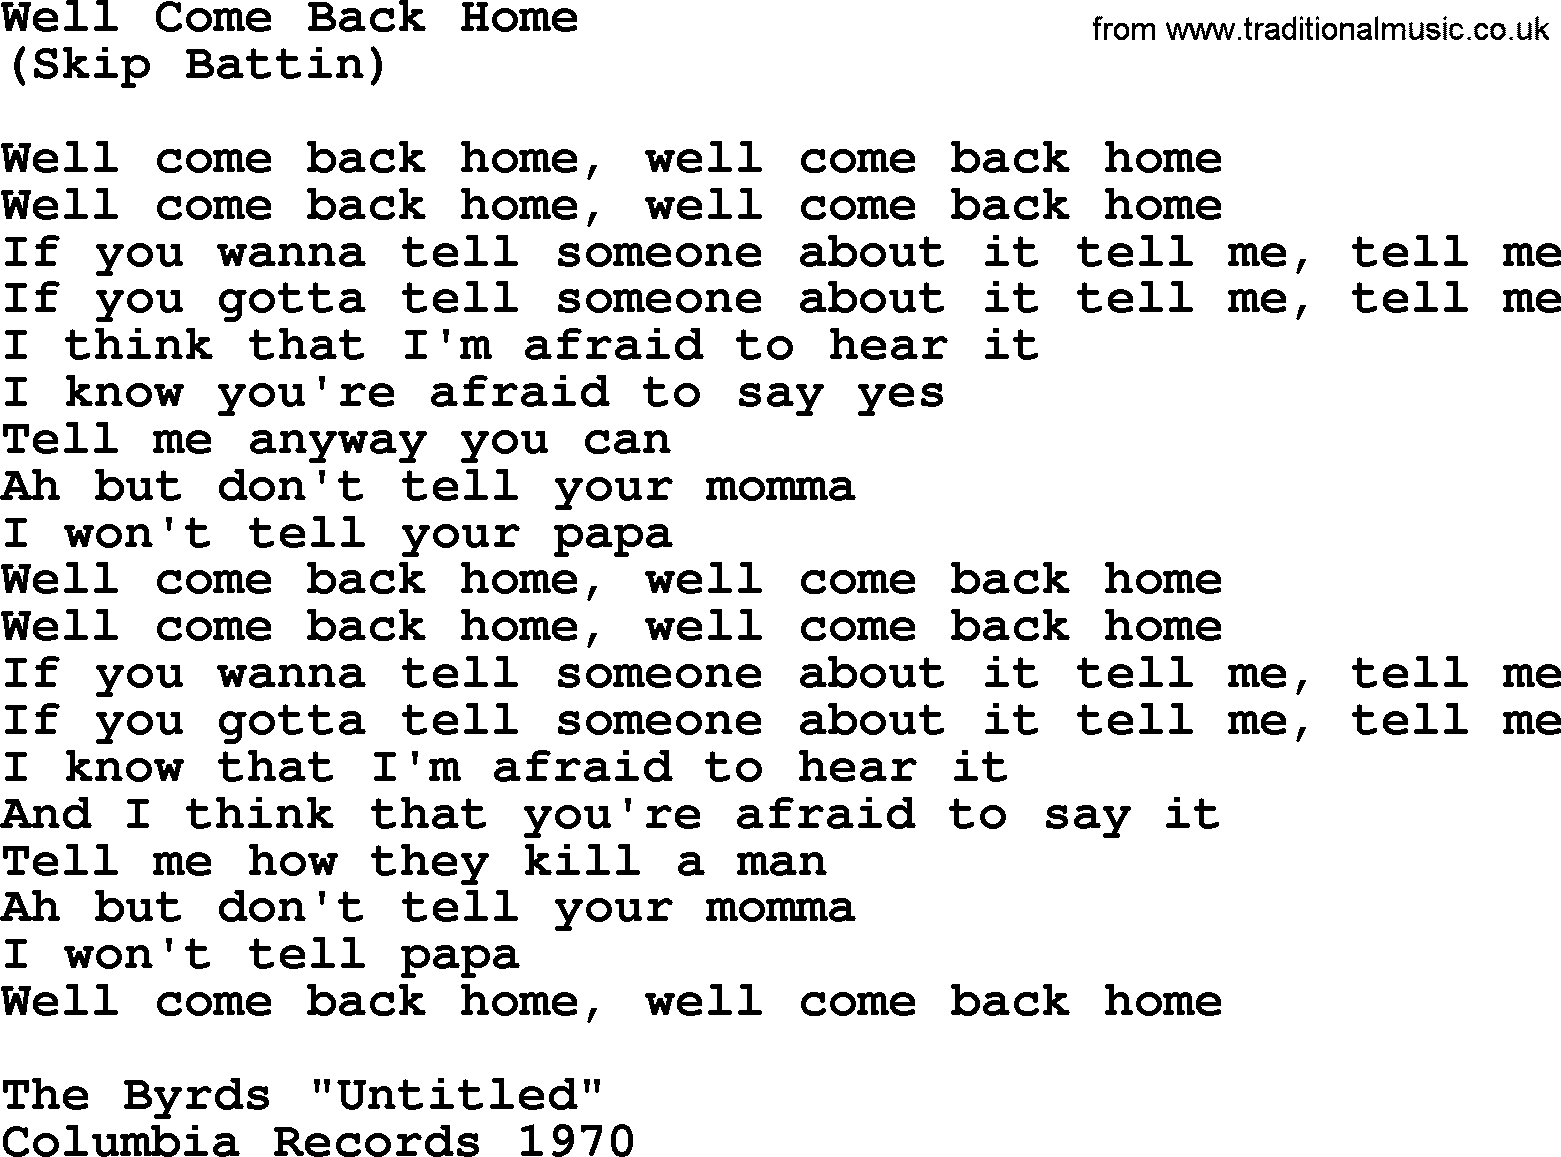 Well come back home by the byrds lyrics with pdf the byrds song well come back home lyrics hexwebz Gallery